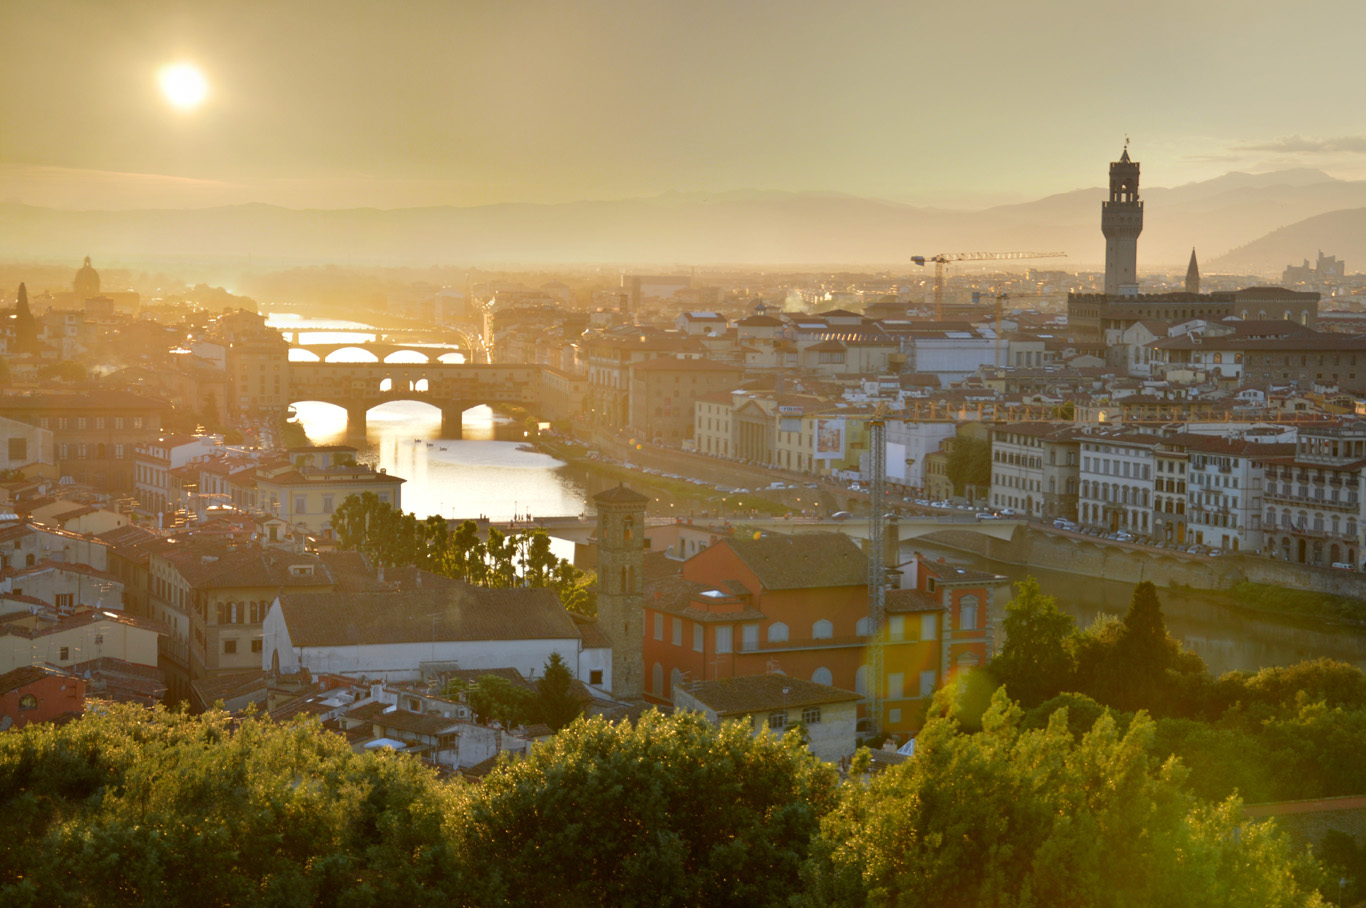 Sunset - view from Piazzale Michelangelo